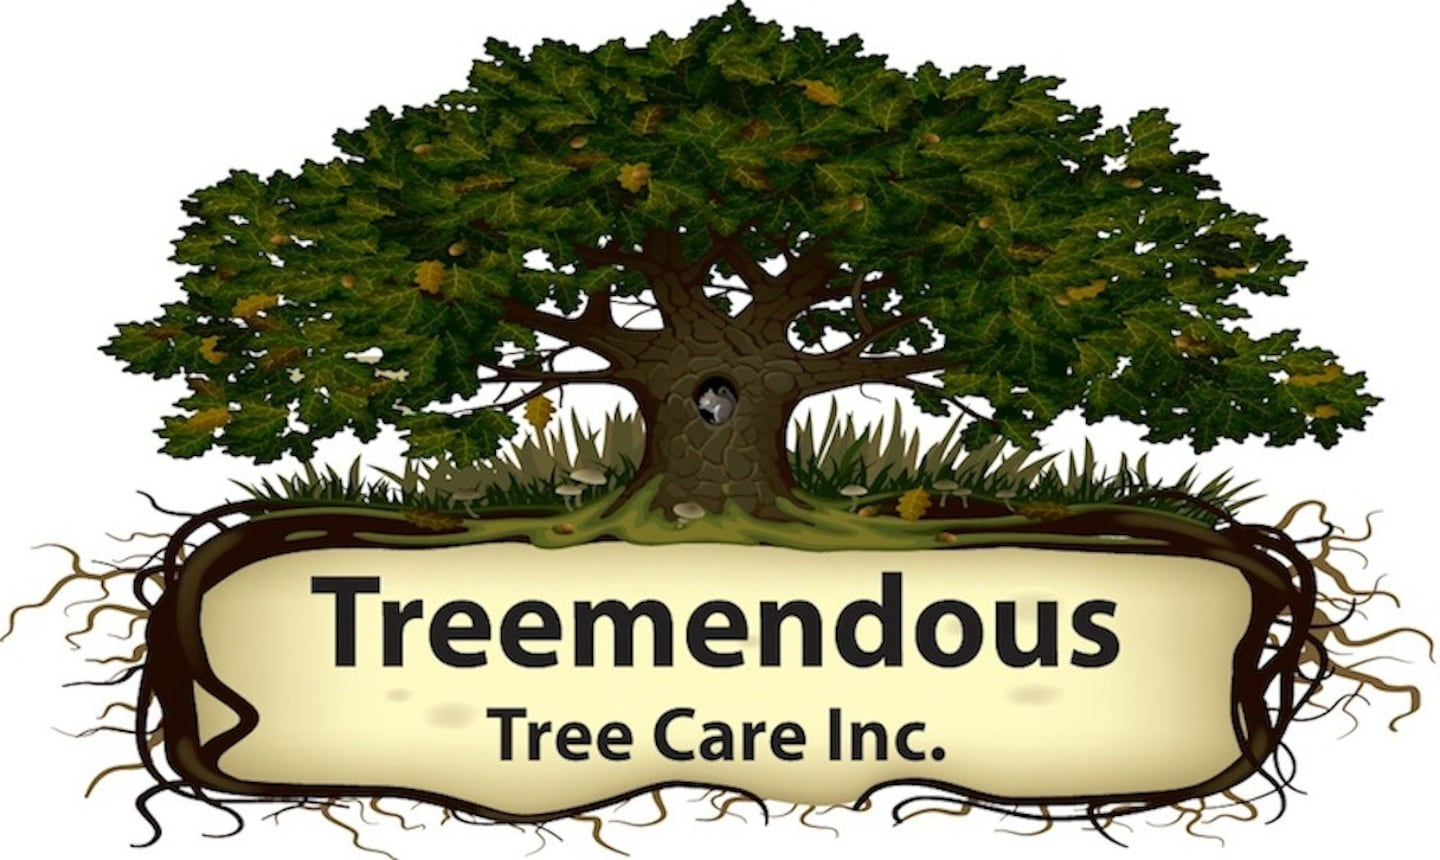 Treemendous Tree Care Inc